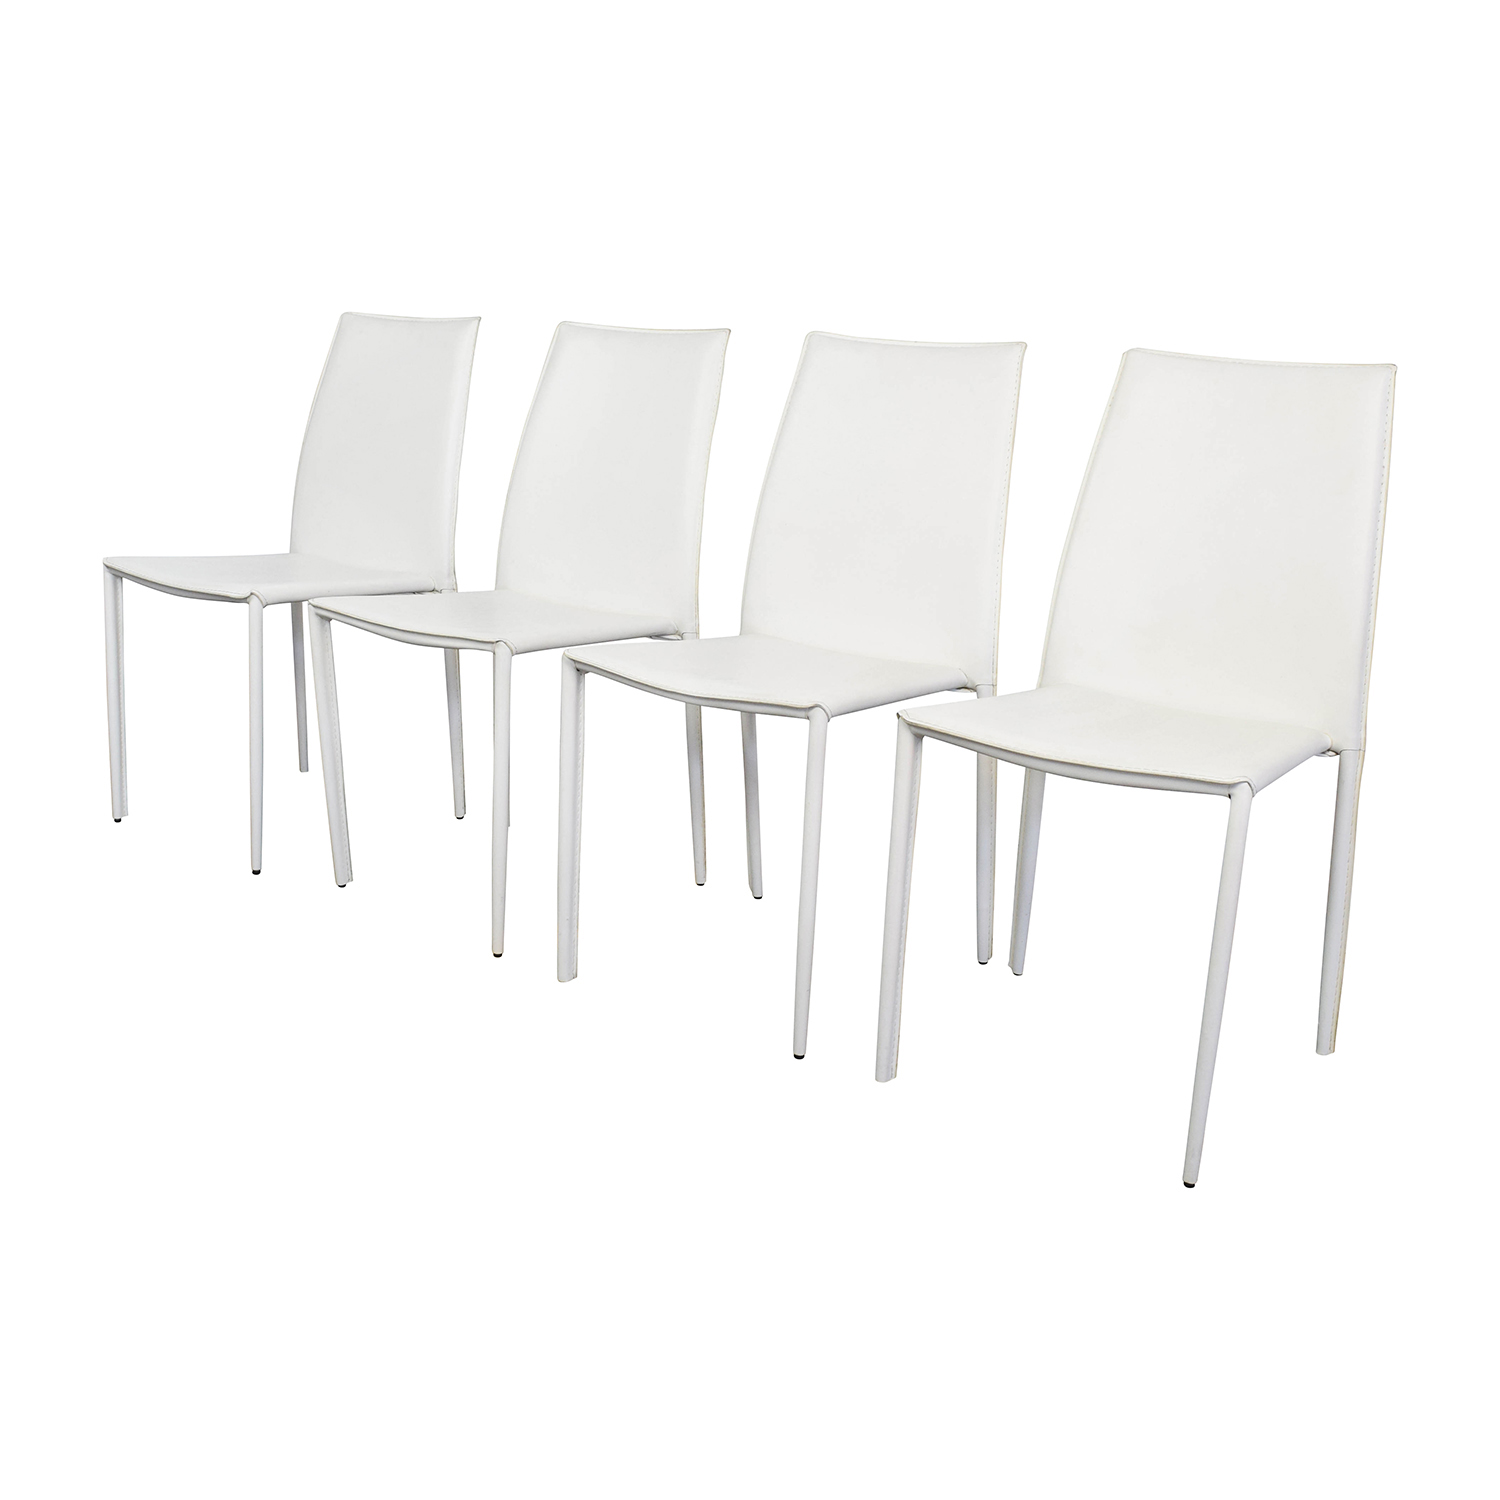 Super 77 Off Allmodern All Modern White Leather Dining Chairs Chairs Caraccident5 Cool Chair Designs And Ideas Caraccident5Info